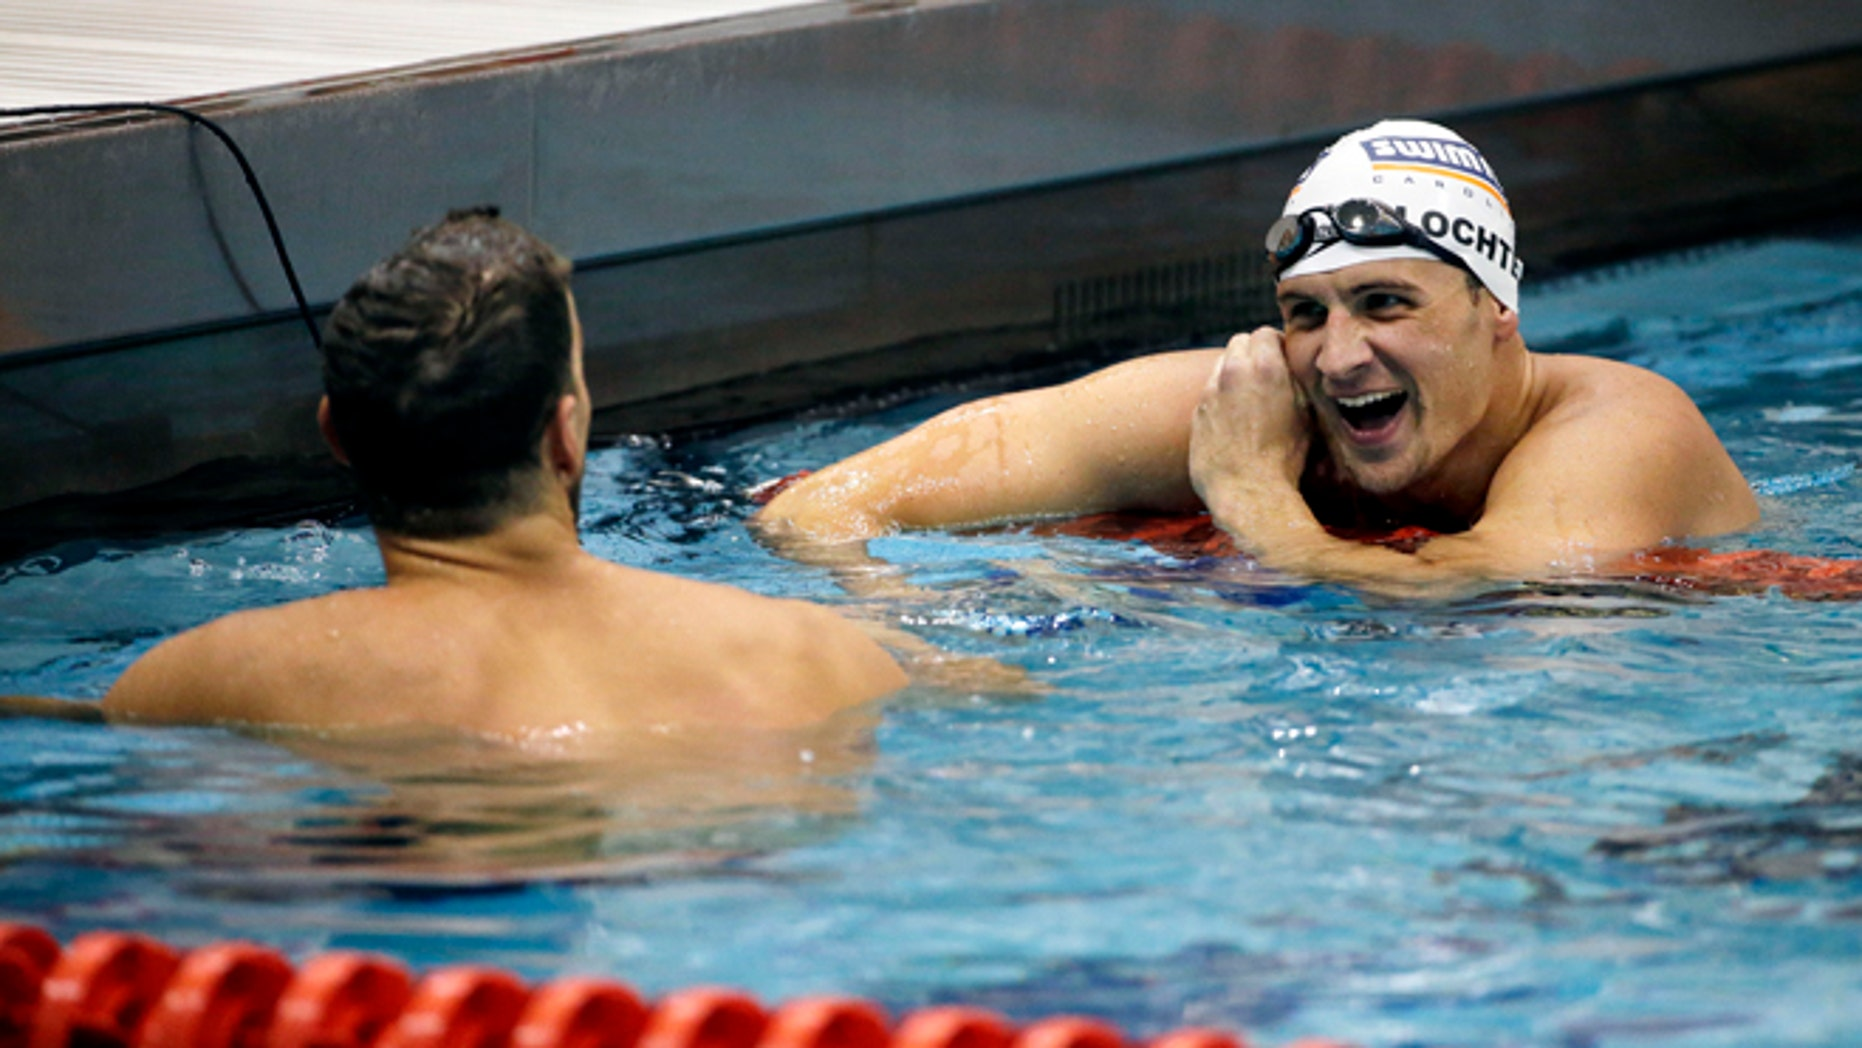 Michael Phelps, left, talks with Ryan Lochte, right, after Phelps beat Lochte to win the men's 100-meter backstroke at the Bulldog Grand Slam swim meet at the University of Georgia, Saturday, July 12, 2014, in Athens, Ga. Lochte took second place in the event. (AP Photo/David Goldman)